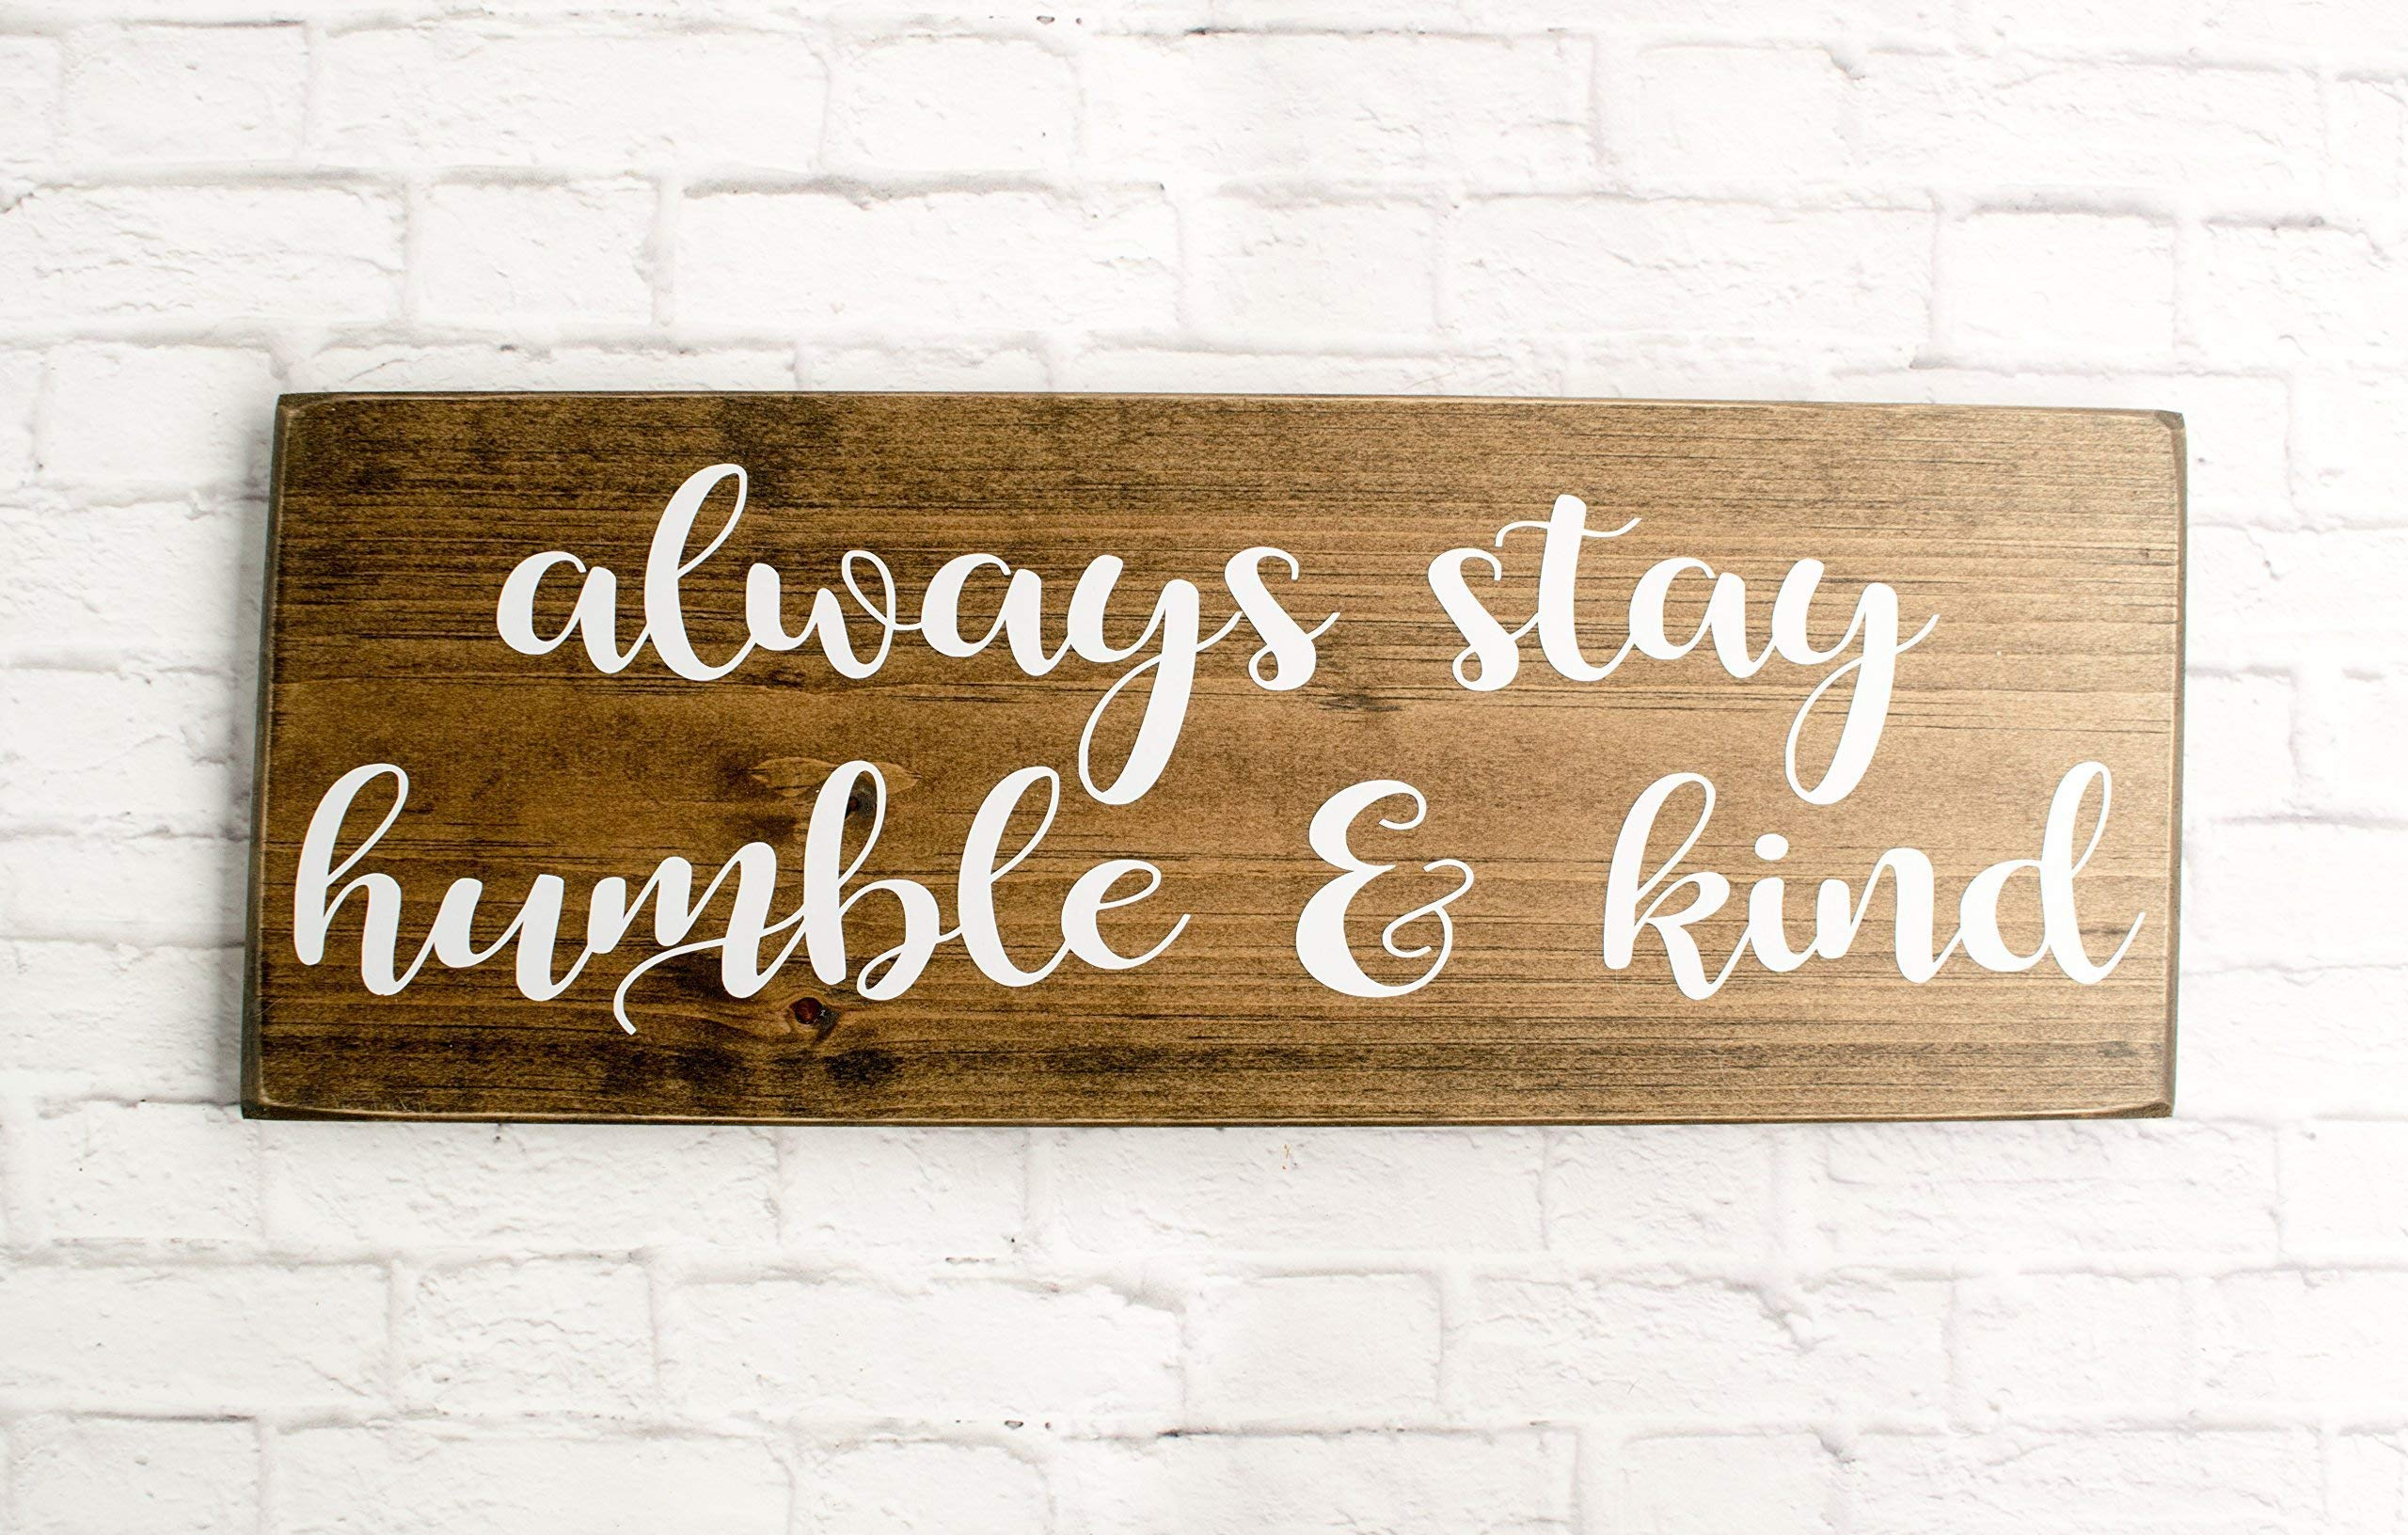 Dark Walnut always stay humble and kind wood sign - Farmhouse style wooden plaque